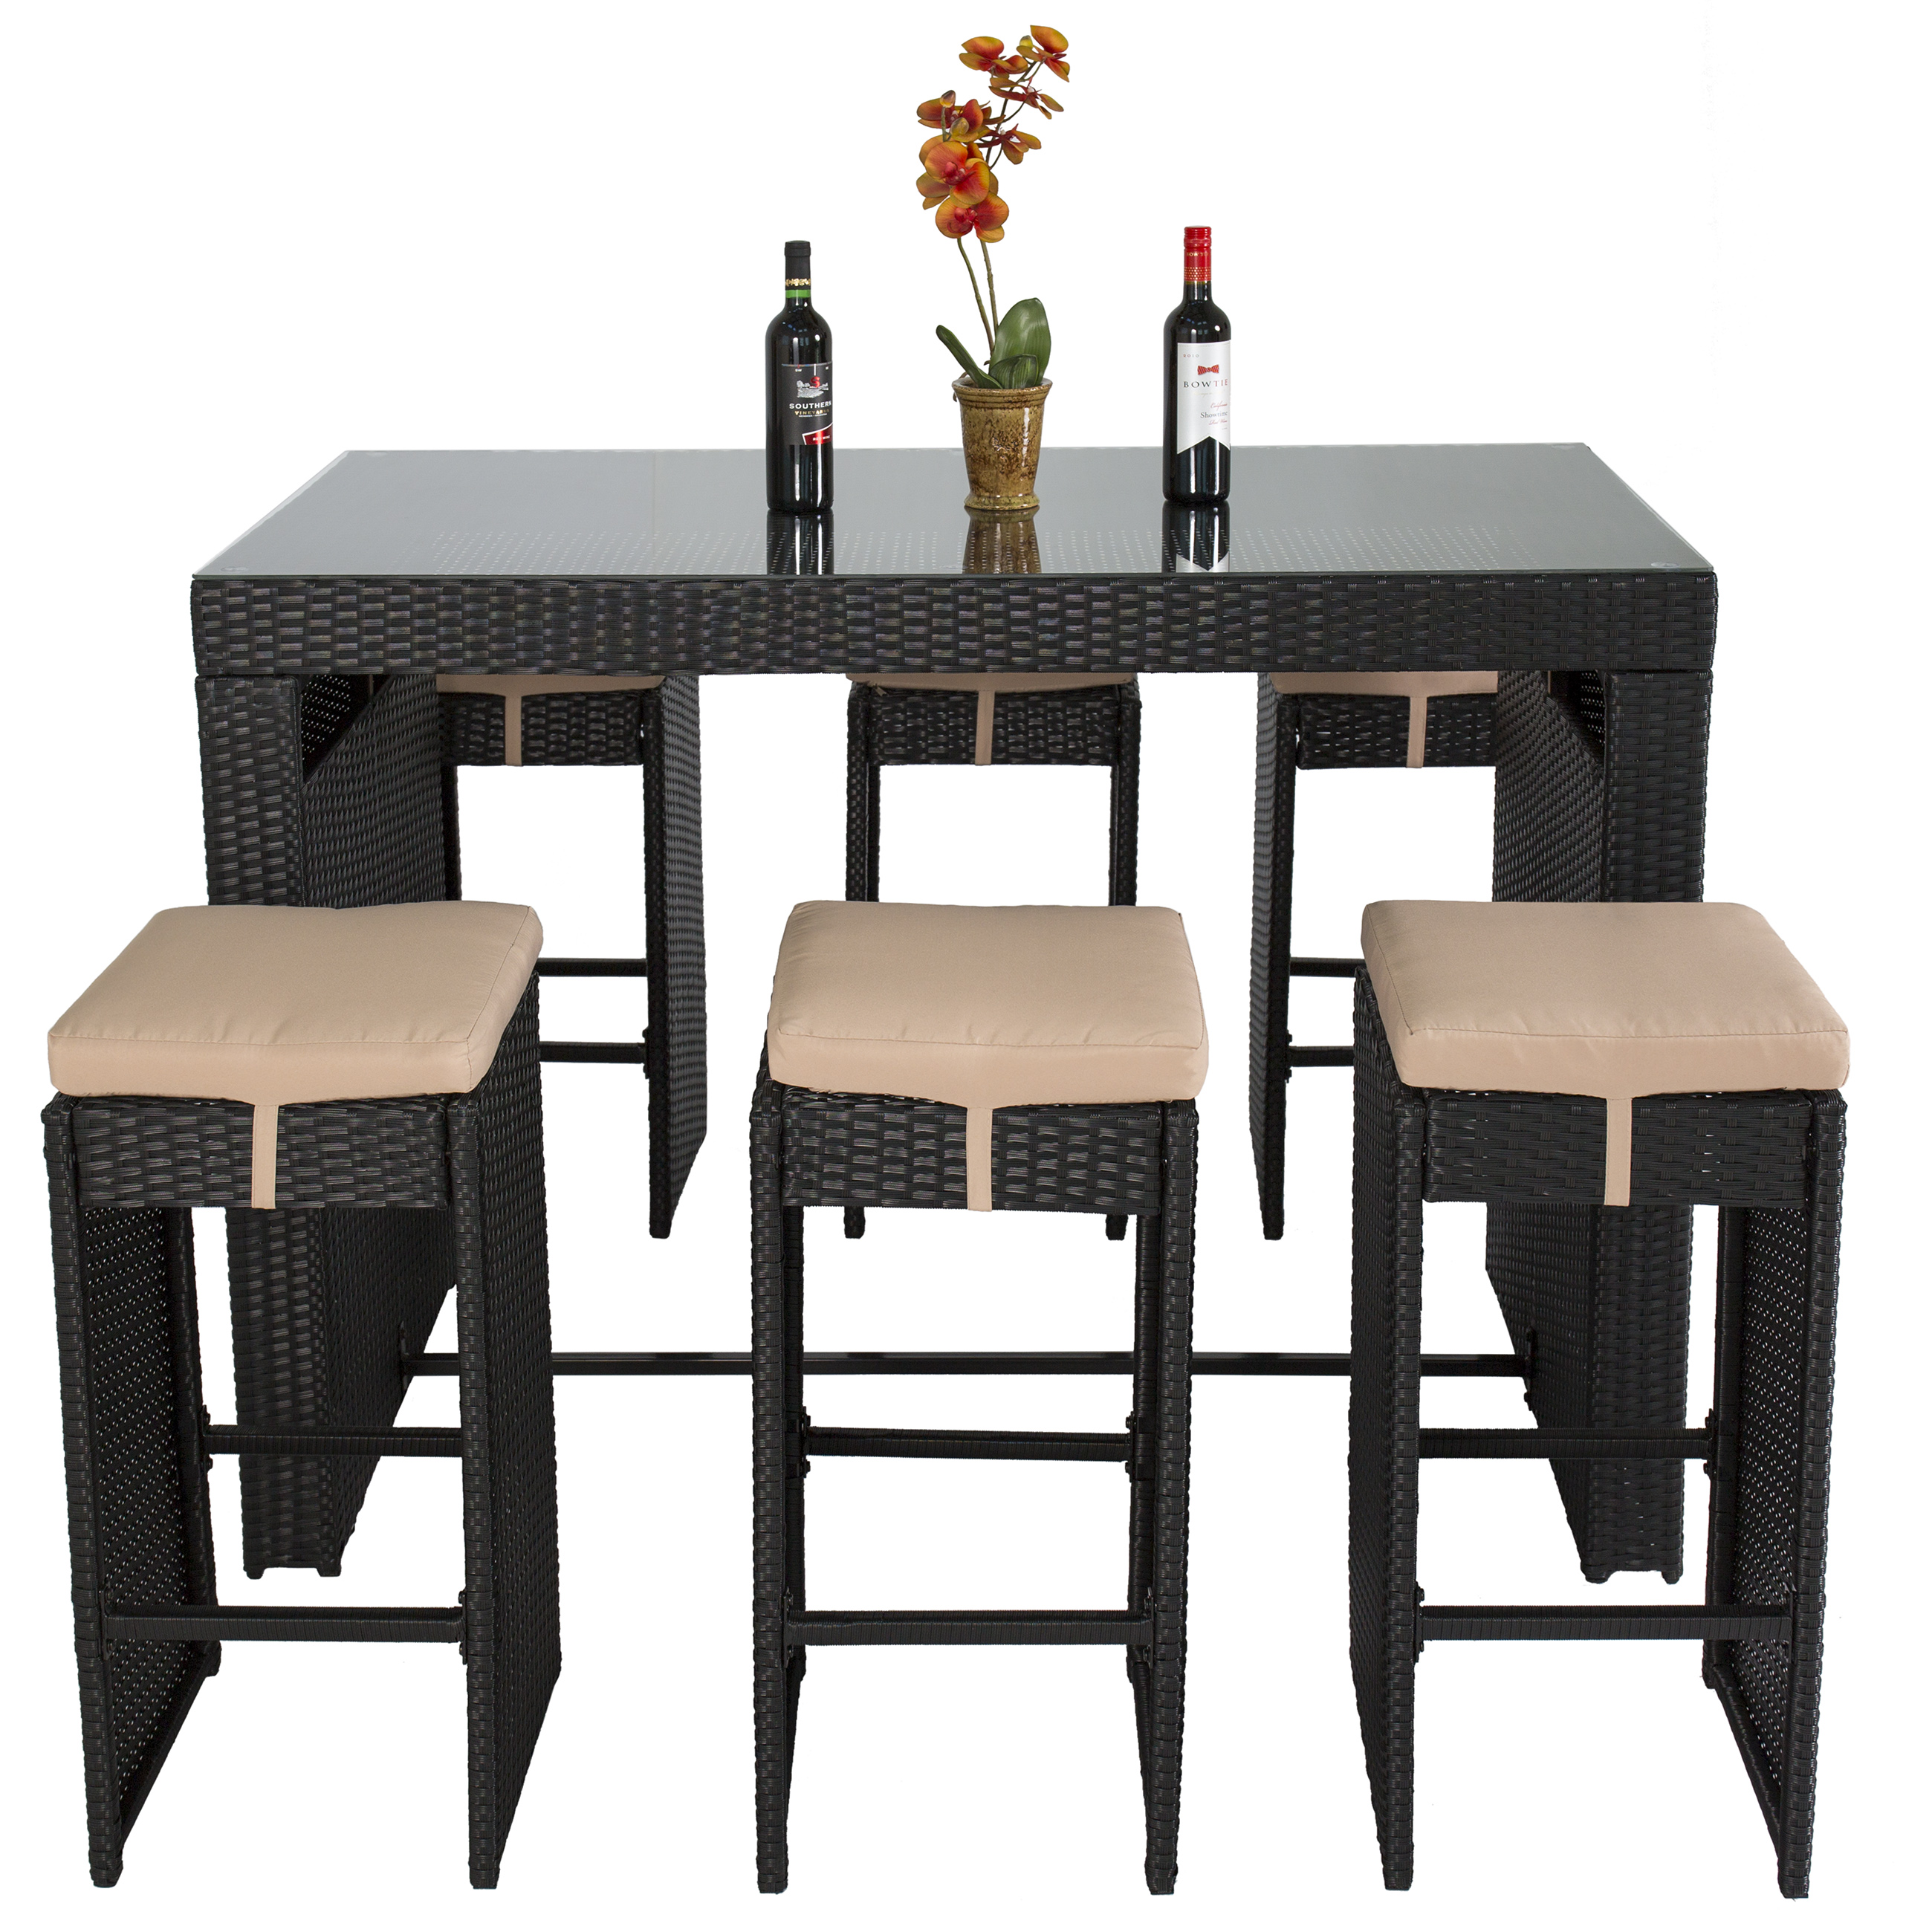 Your home improvements refference large outdoor dining tables - Best Choice Products 7pc Rattan Wicker Bar Dining Table Patio Furniture Set Walmart Com